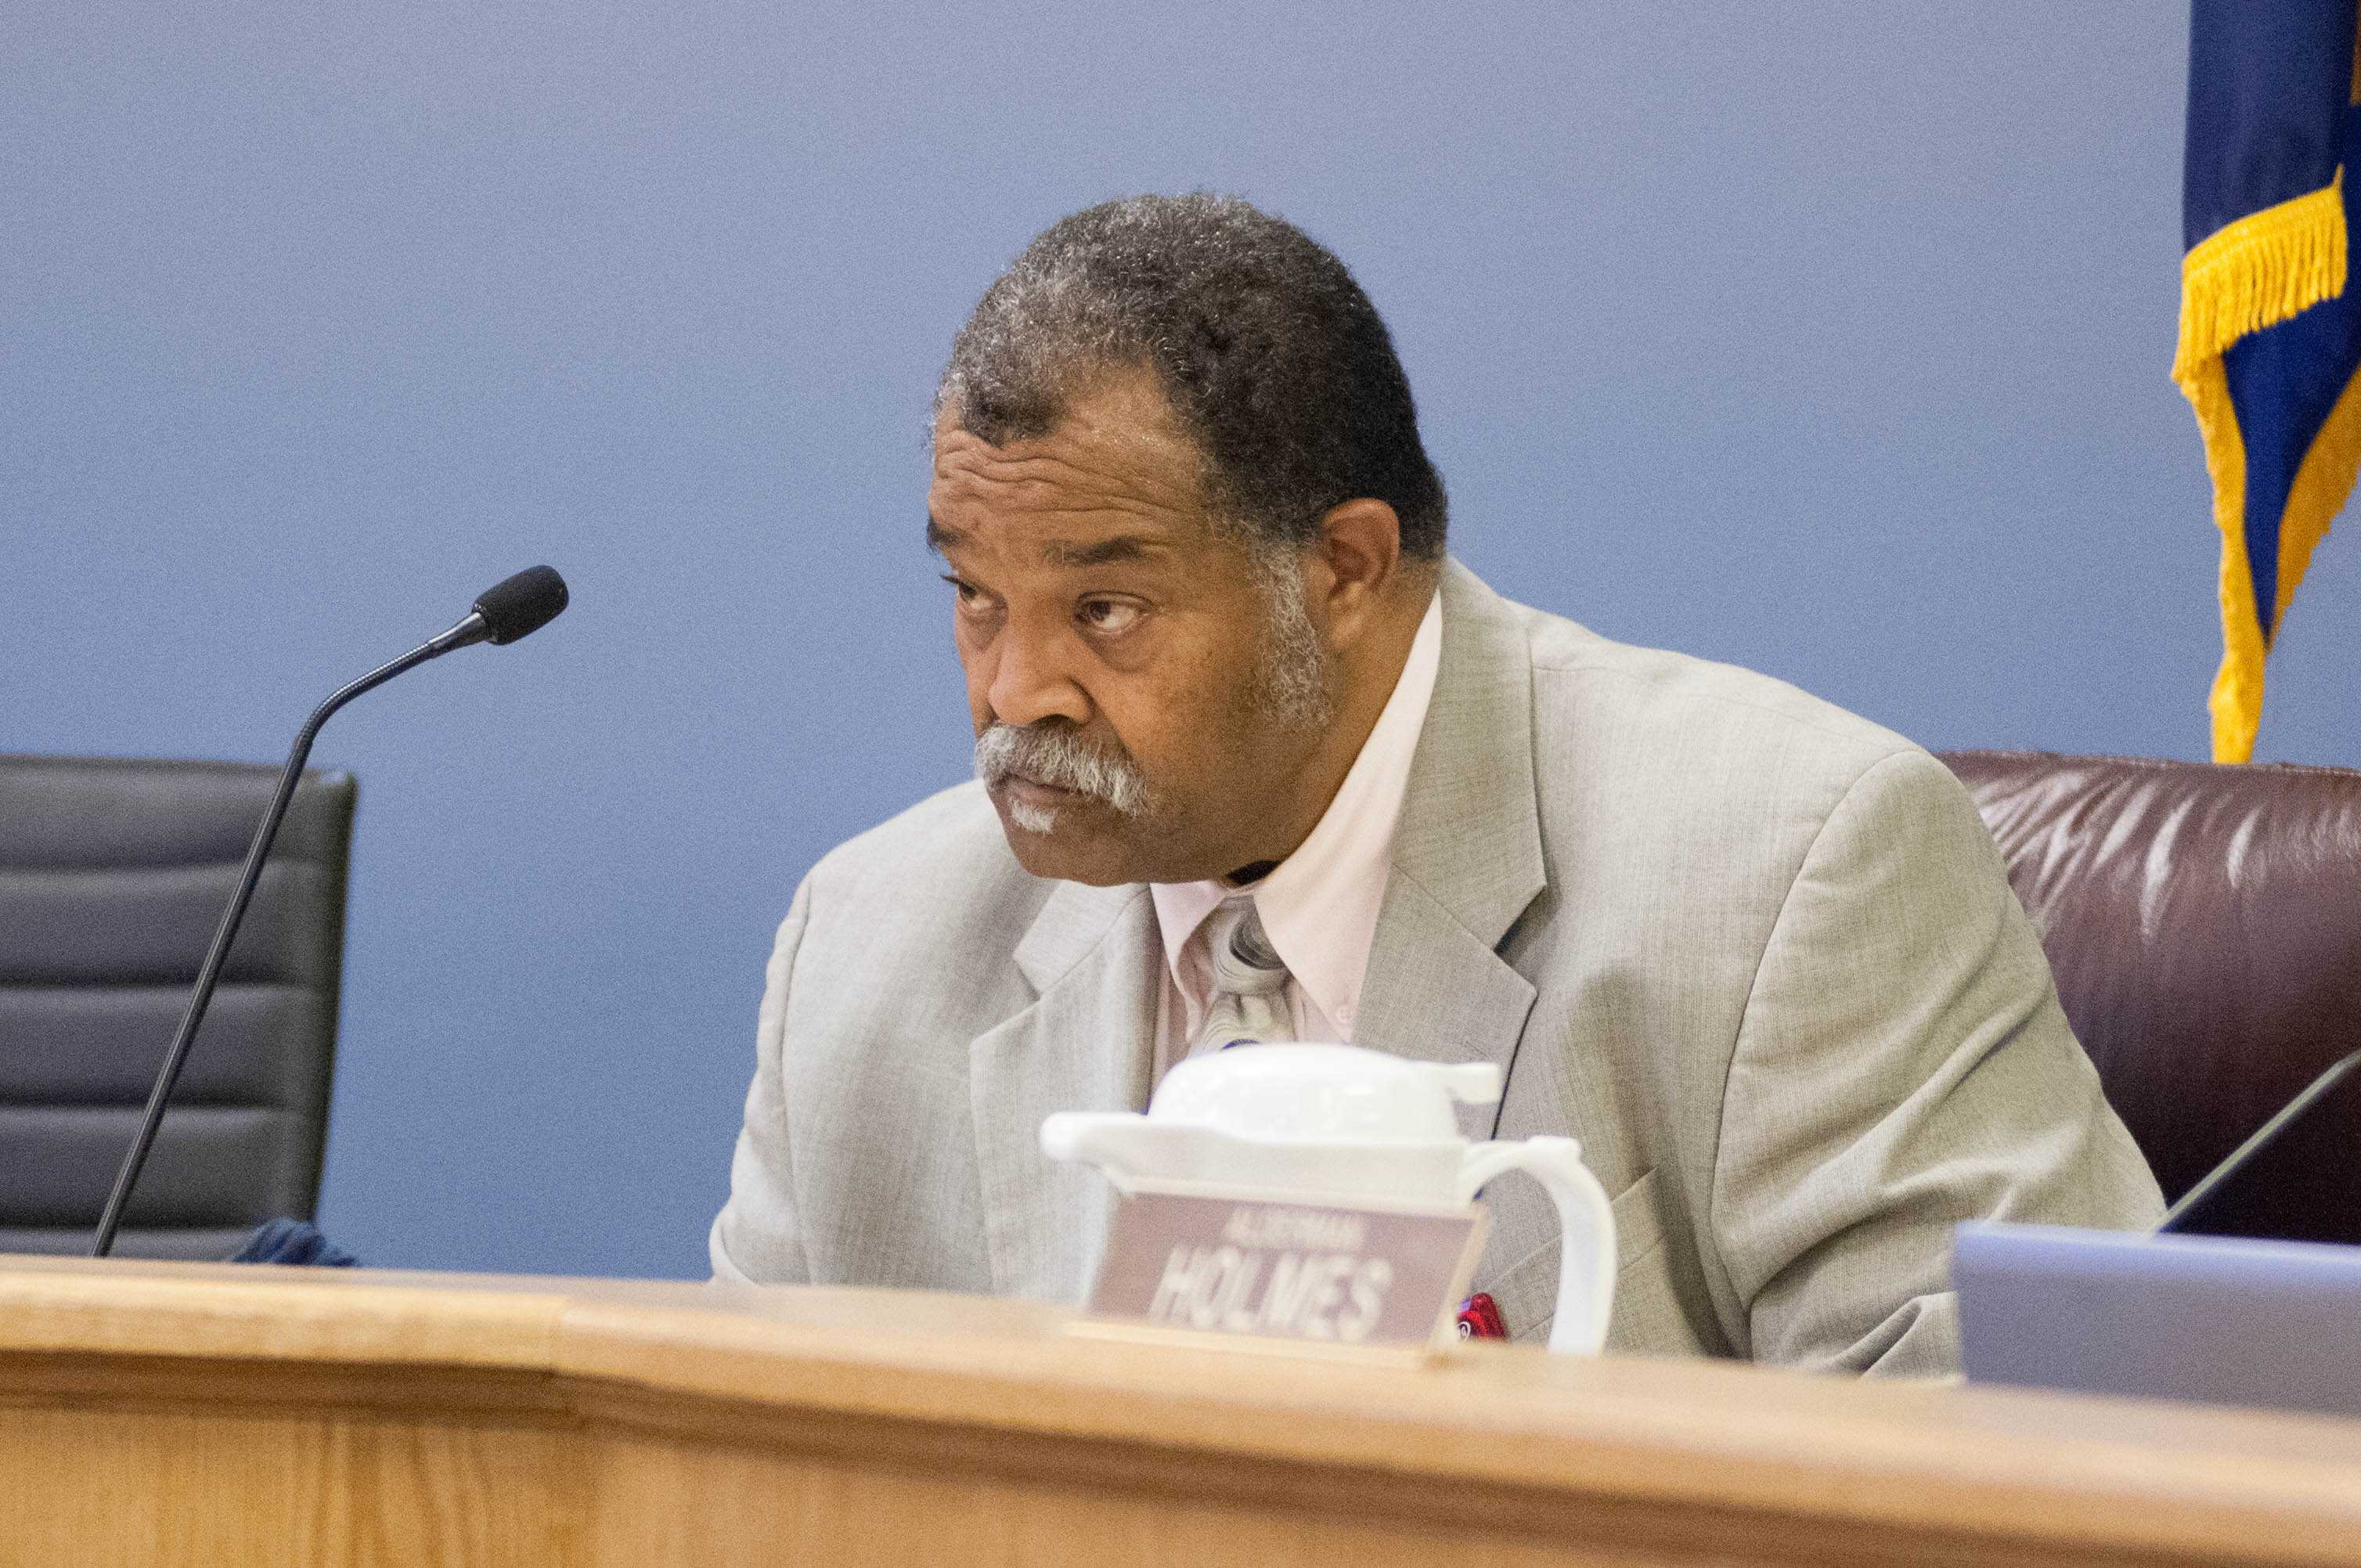 City Clerk Rodney Greene attends a council meeting. Greene fell ill at an electoral board meeting on Friday, resulting in the postponement of a decision on multiple candidate challenges.